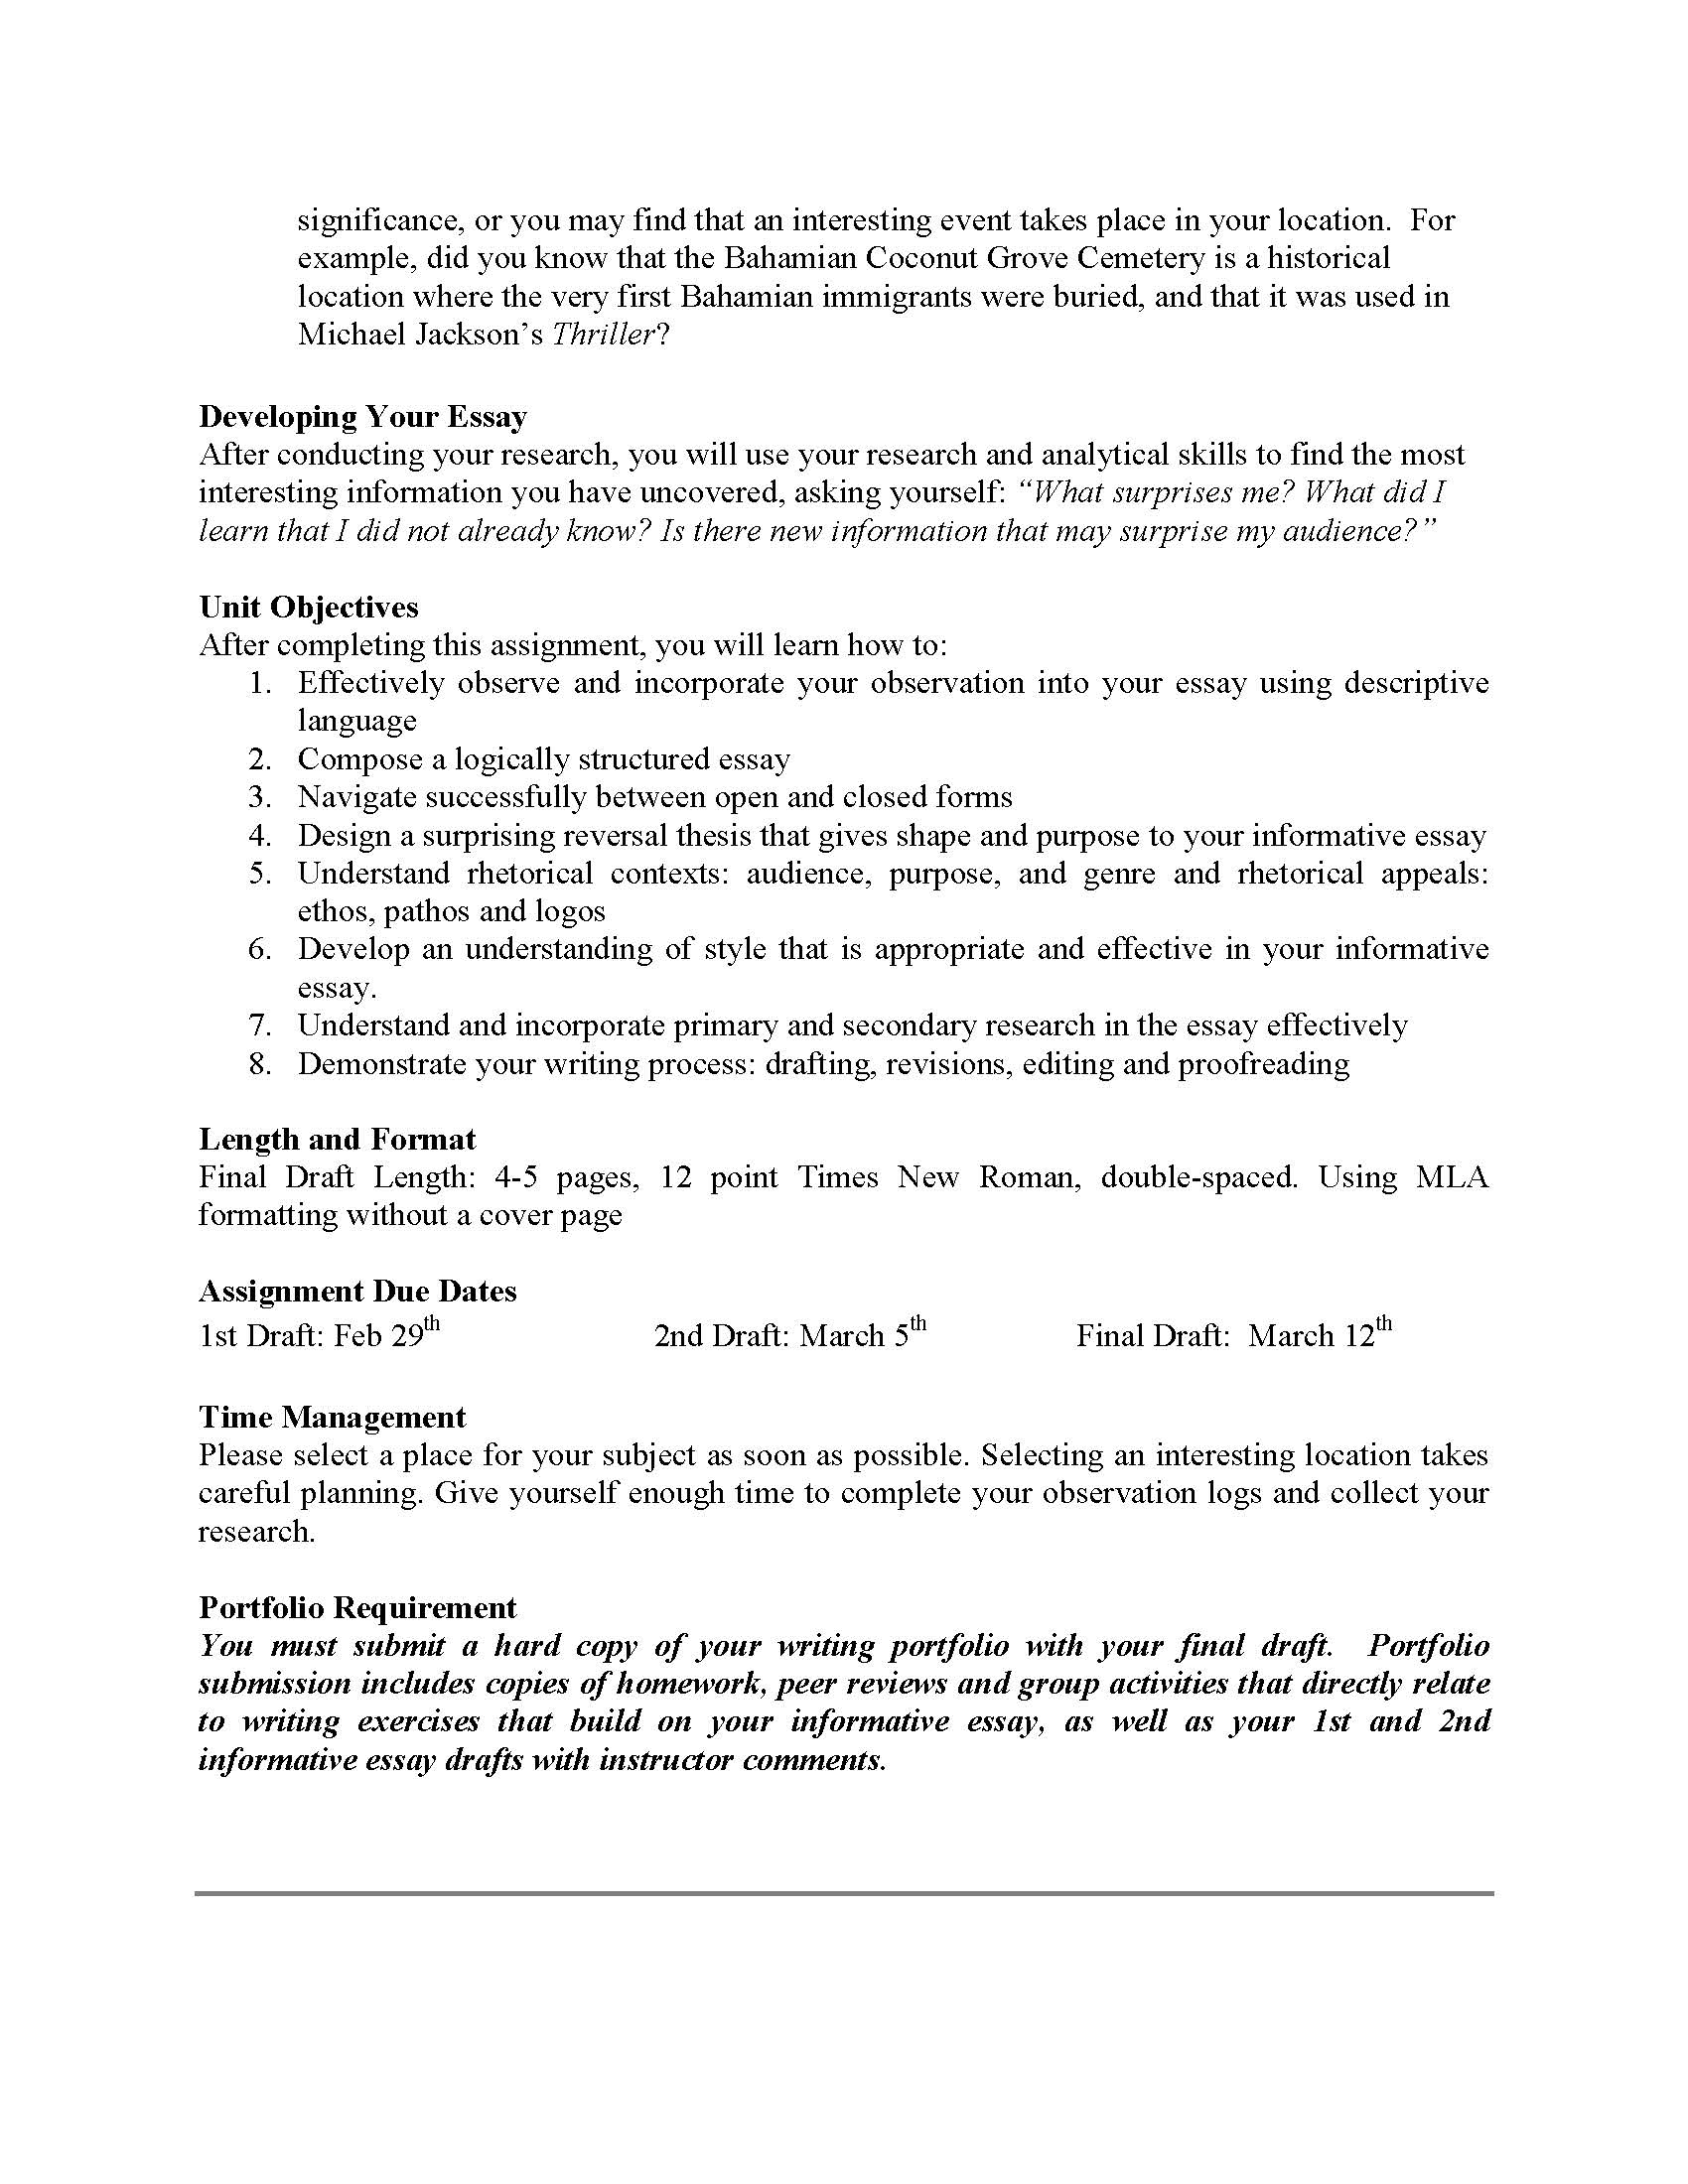 010 Informative Essay Ideas Unit Assignment Page 2 Wondrous Prompts Writing Topics 4th Grade Expository Middle School Full